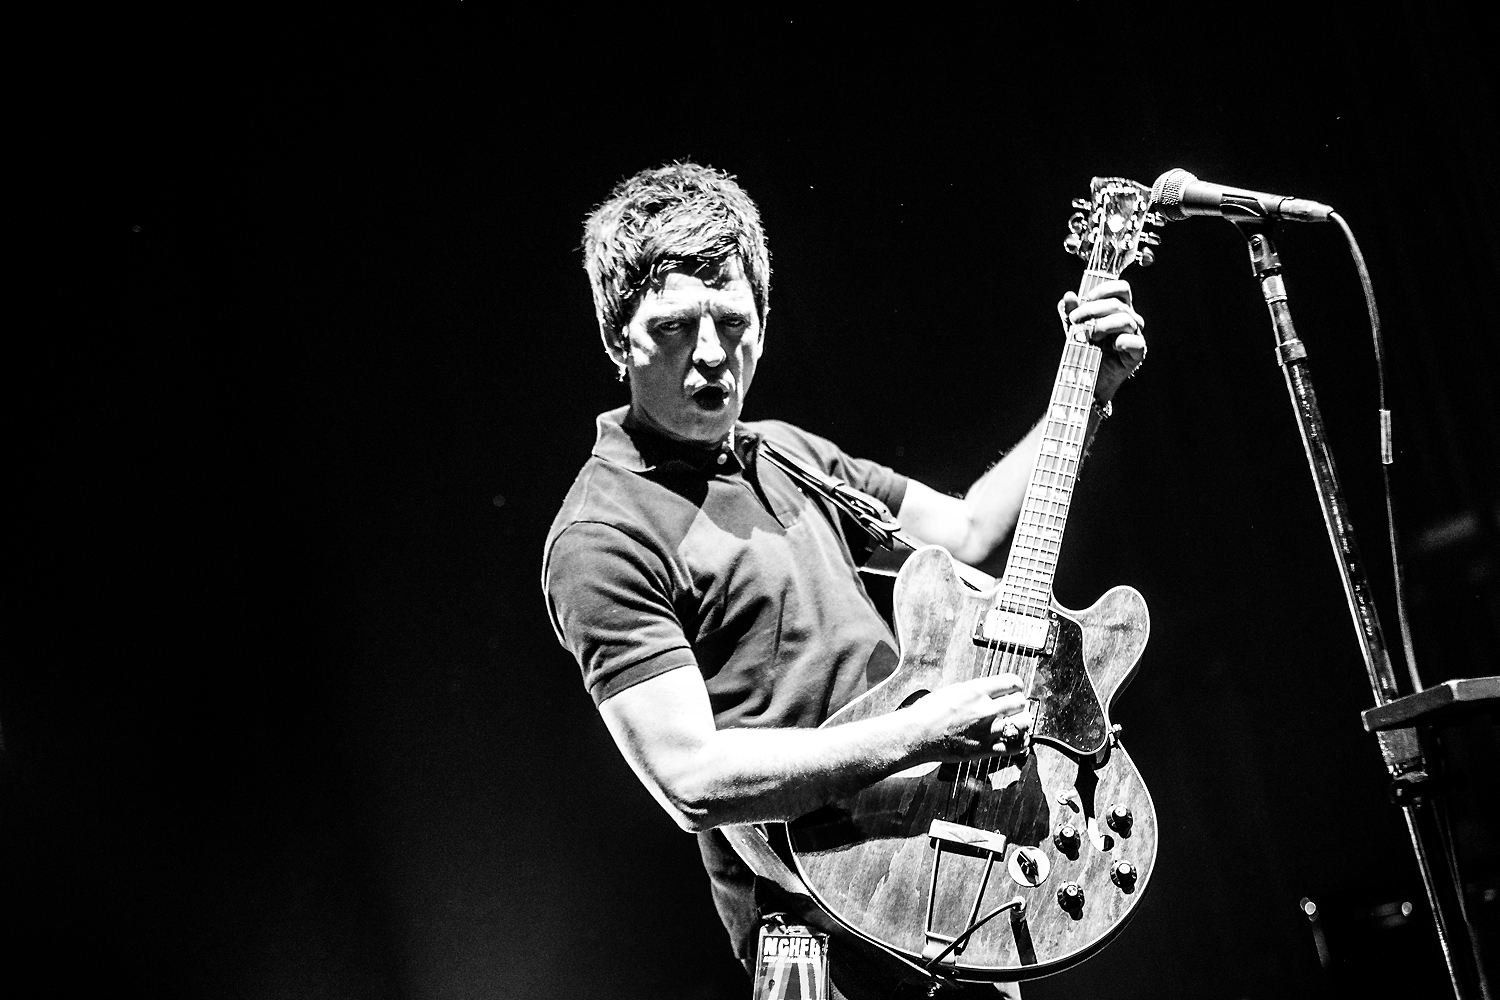 Noel Gallagher's HFB 05